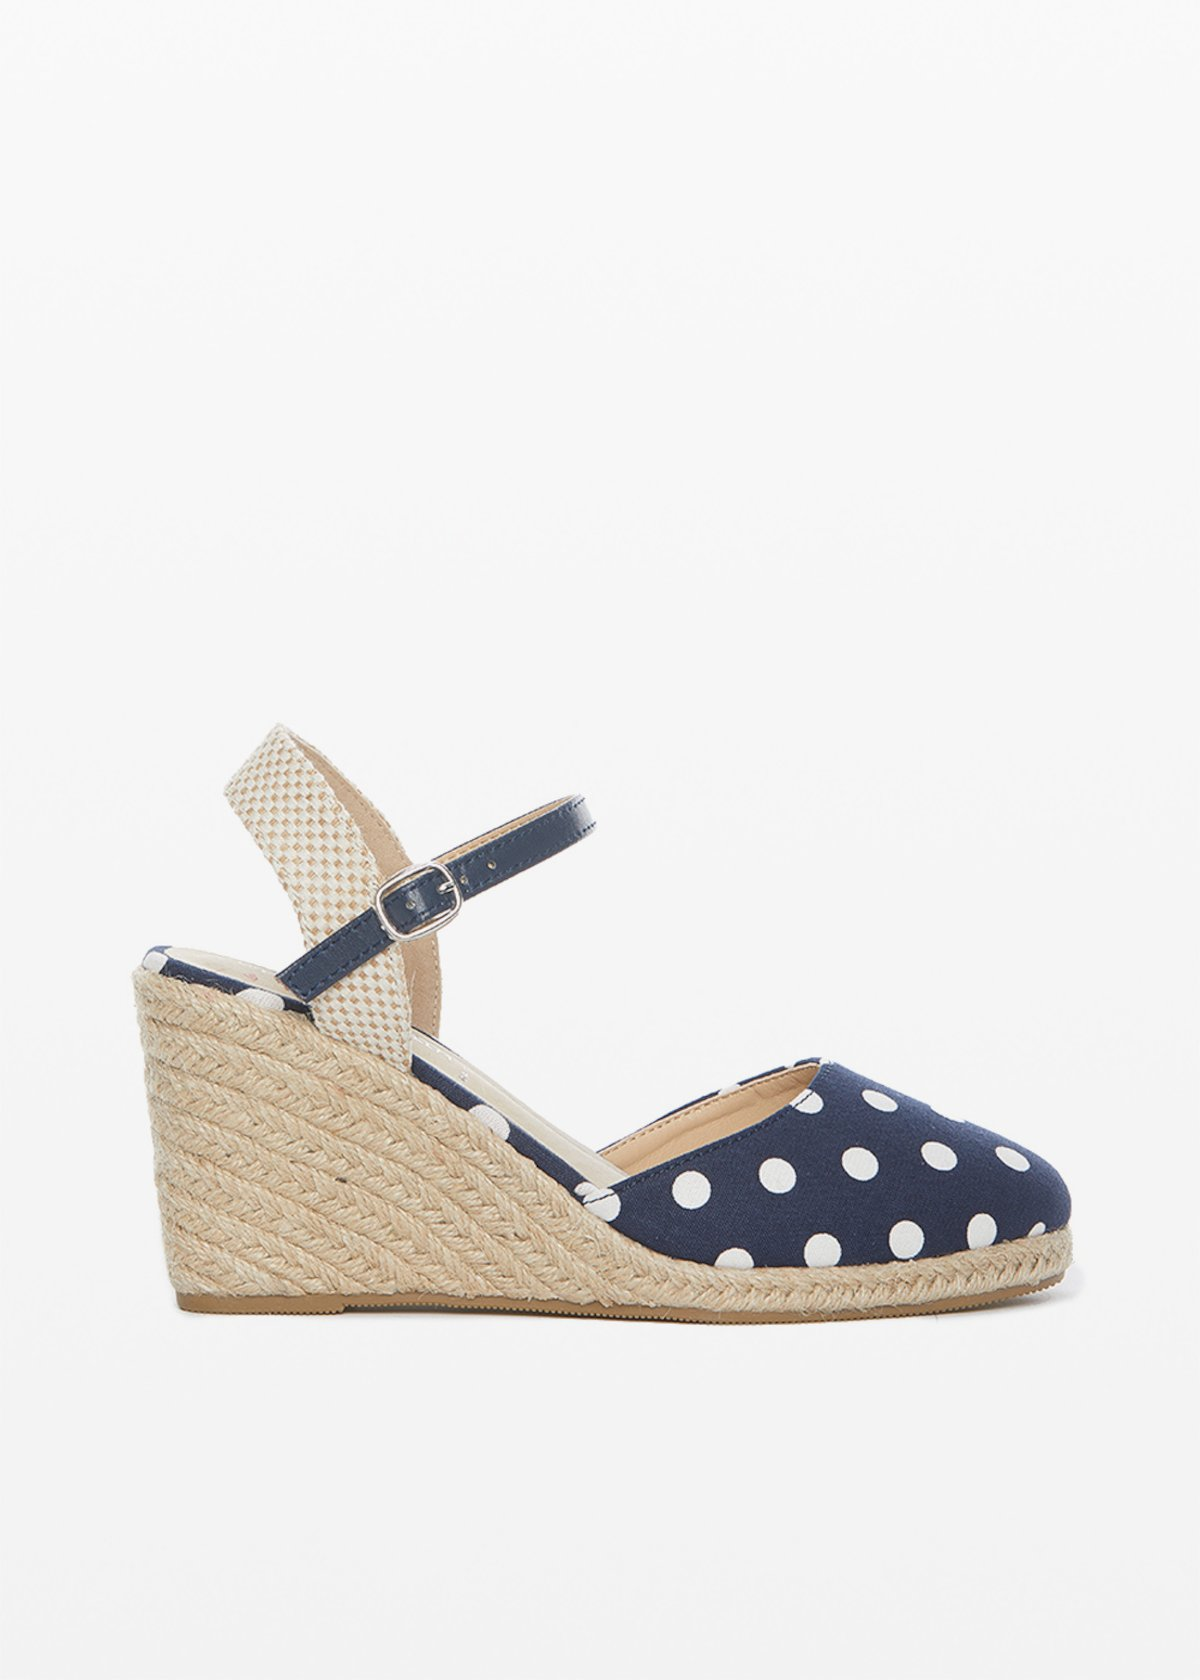 Sirya sandals Polka dot pattern and wedge